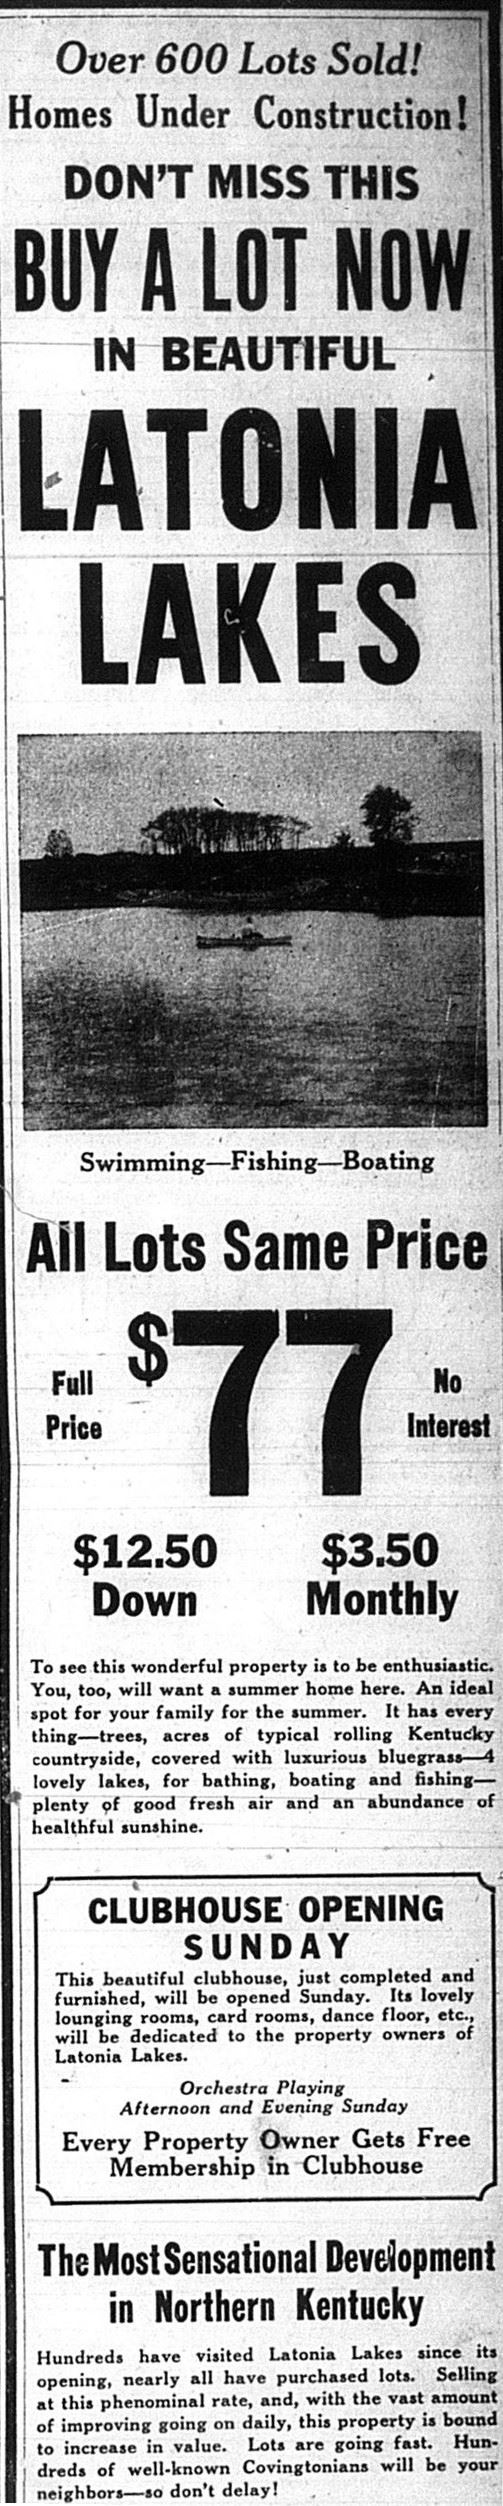 Historical Latonia Lakes Newspaper Clipping 3